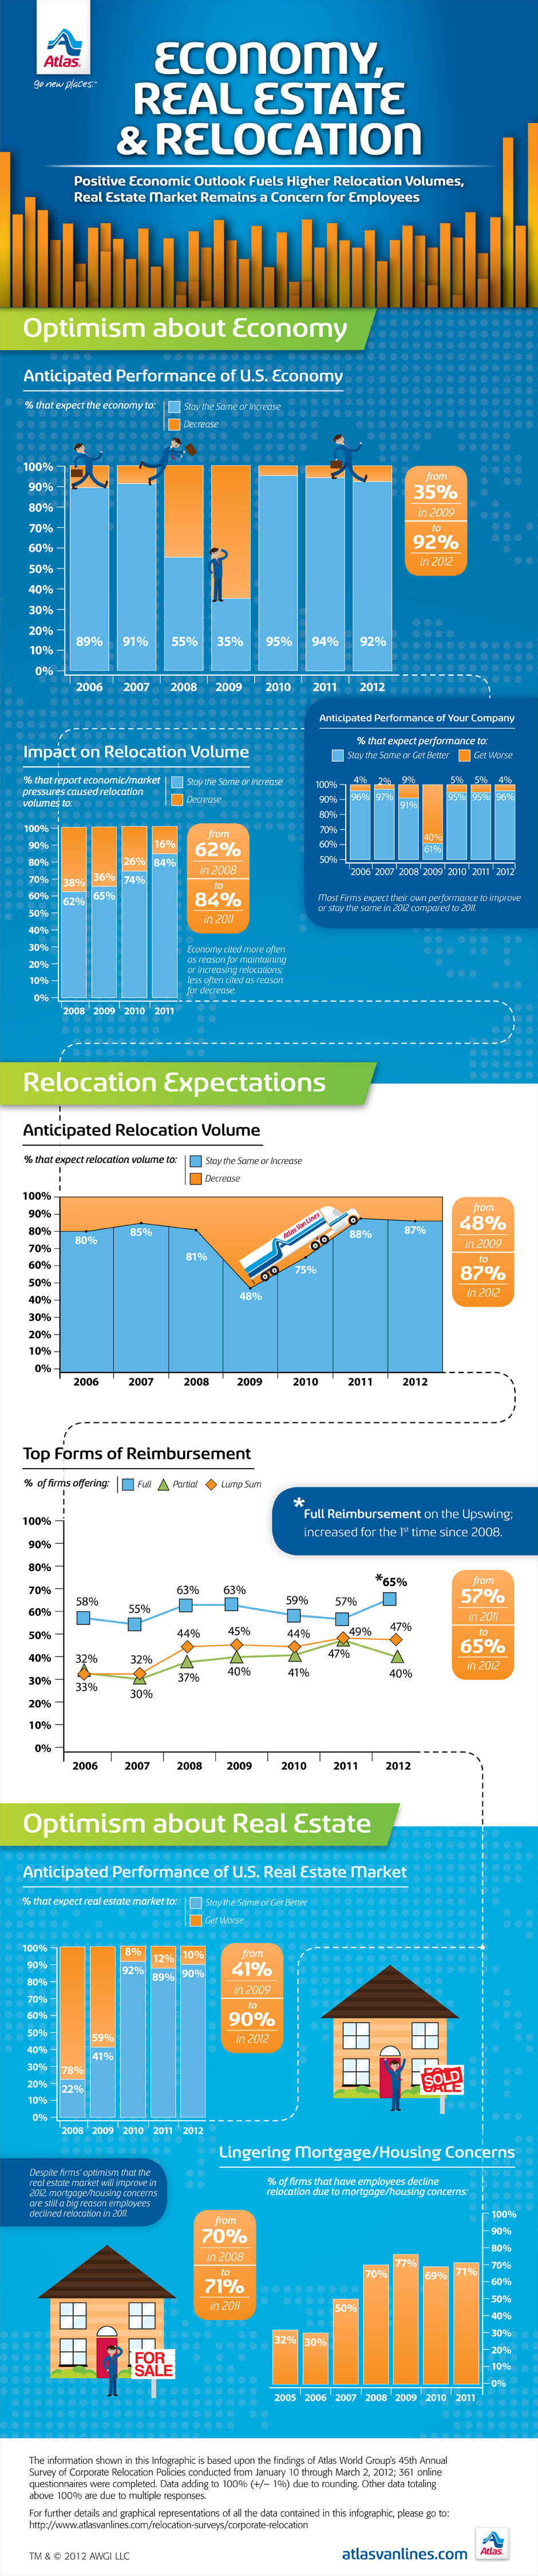 Economy, Real Estate, and Relocation